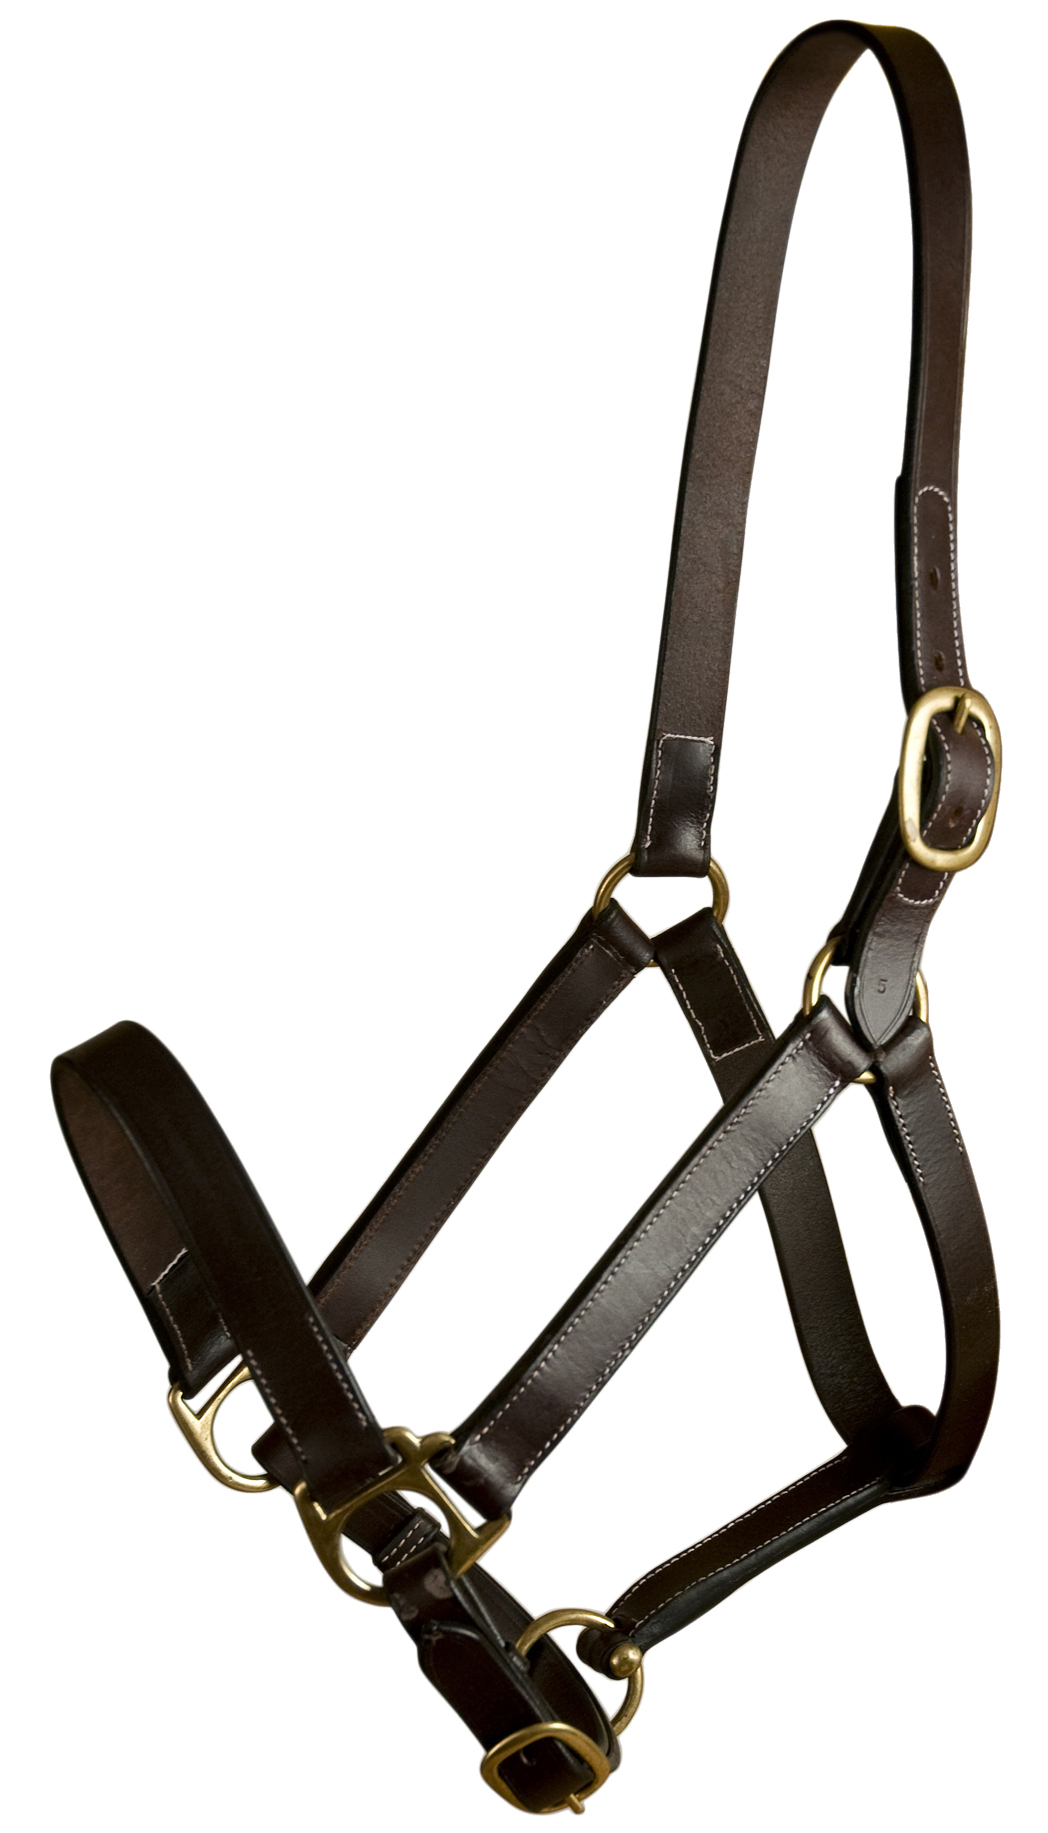 Gatsby Leather Adjustable Turnour Halter without Snap